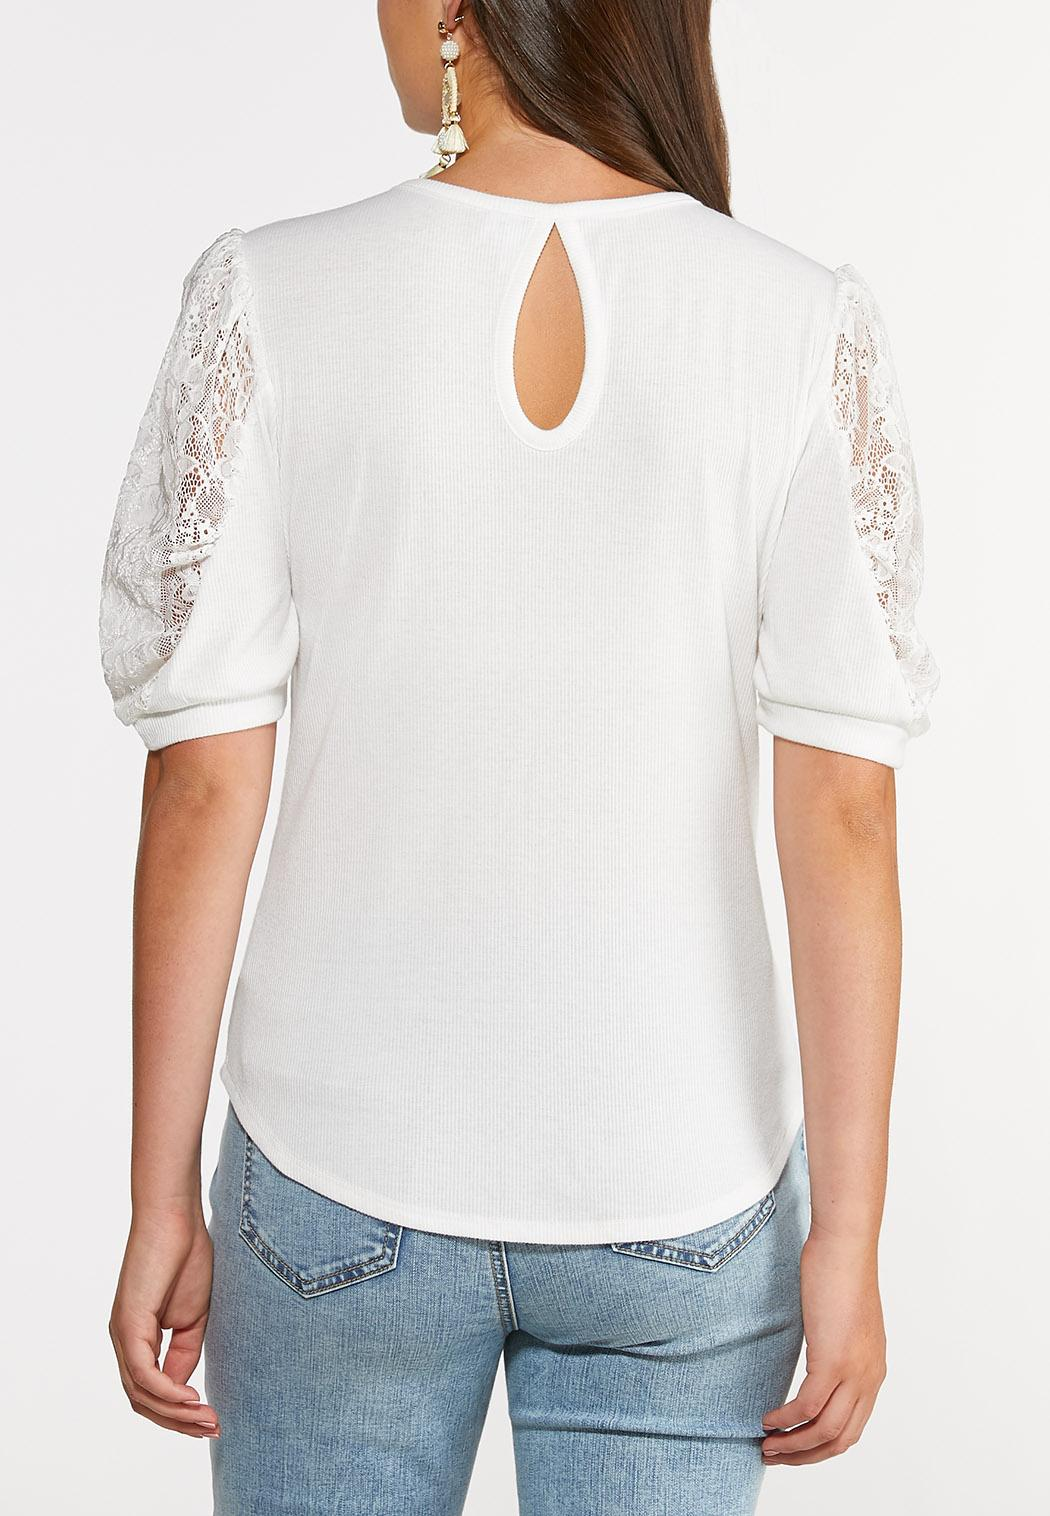 Lace Puff Sleeve Top (Item #44347155)